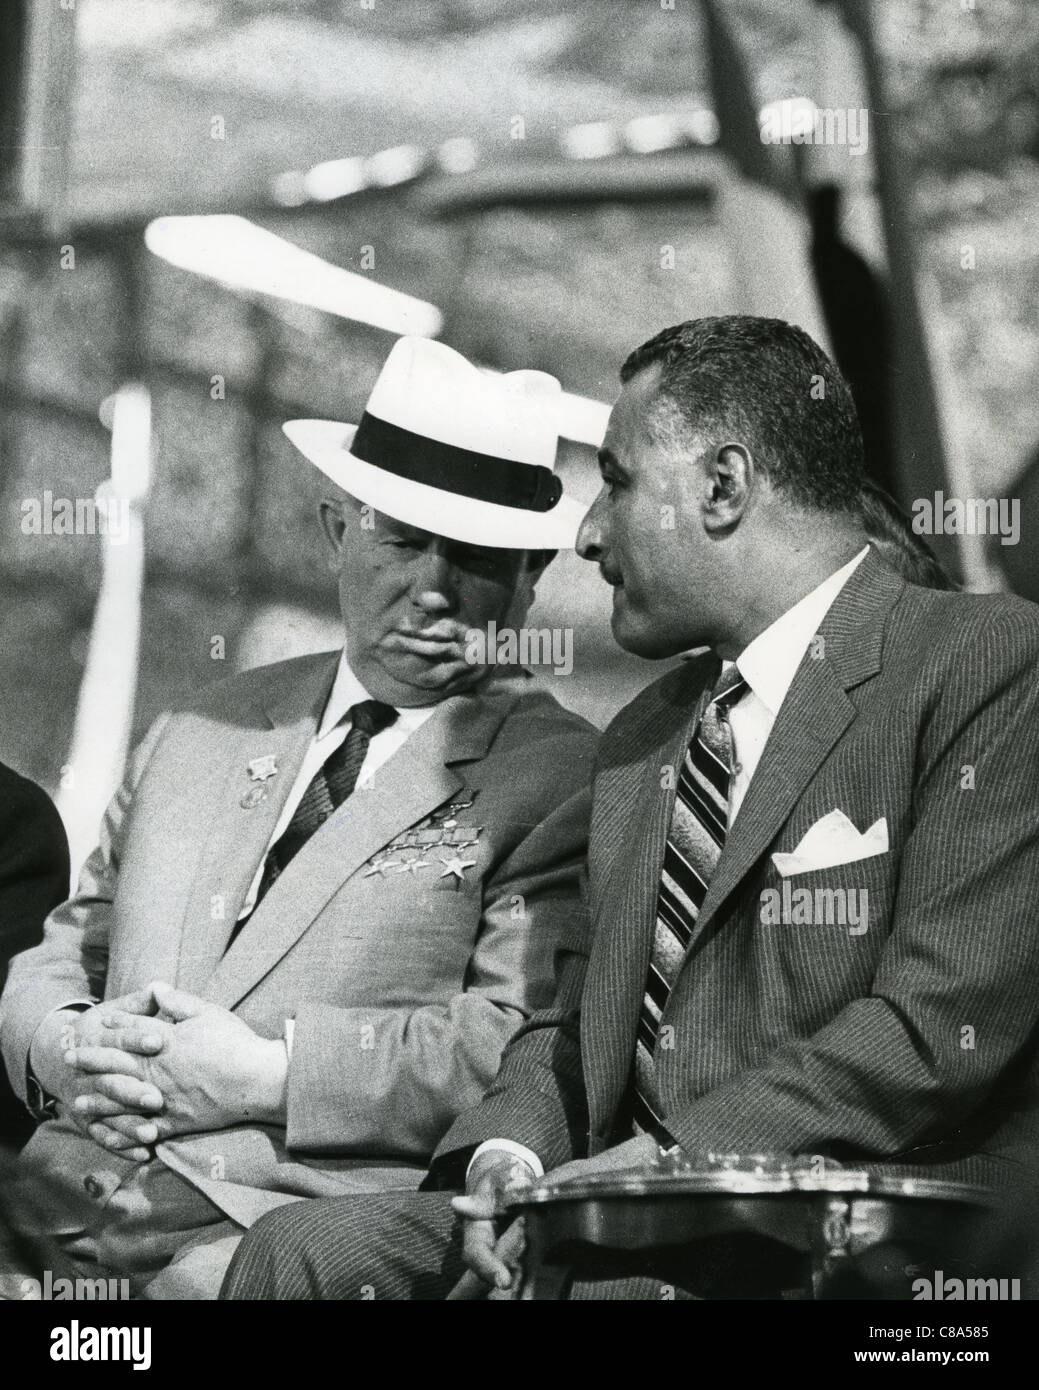 GAMAL ABDEL NASSER (1918-1970) second President of Egypt at right with Nikita Kruschev in May 1964 - Stock Image